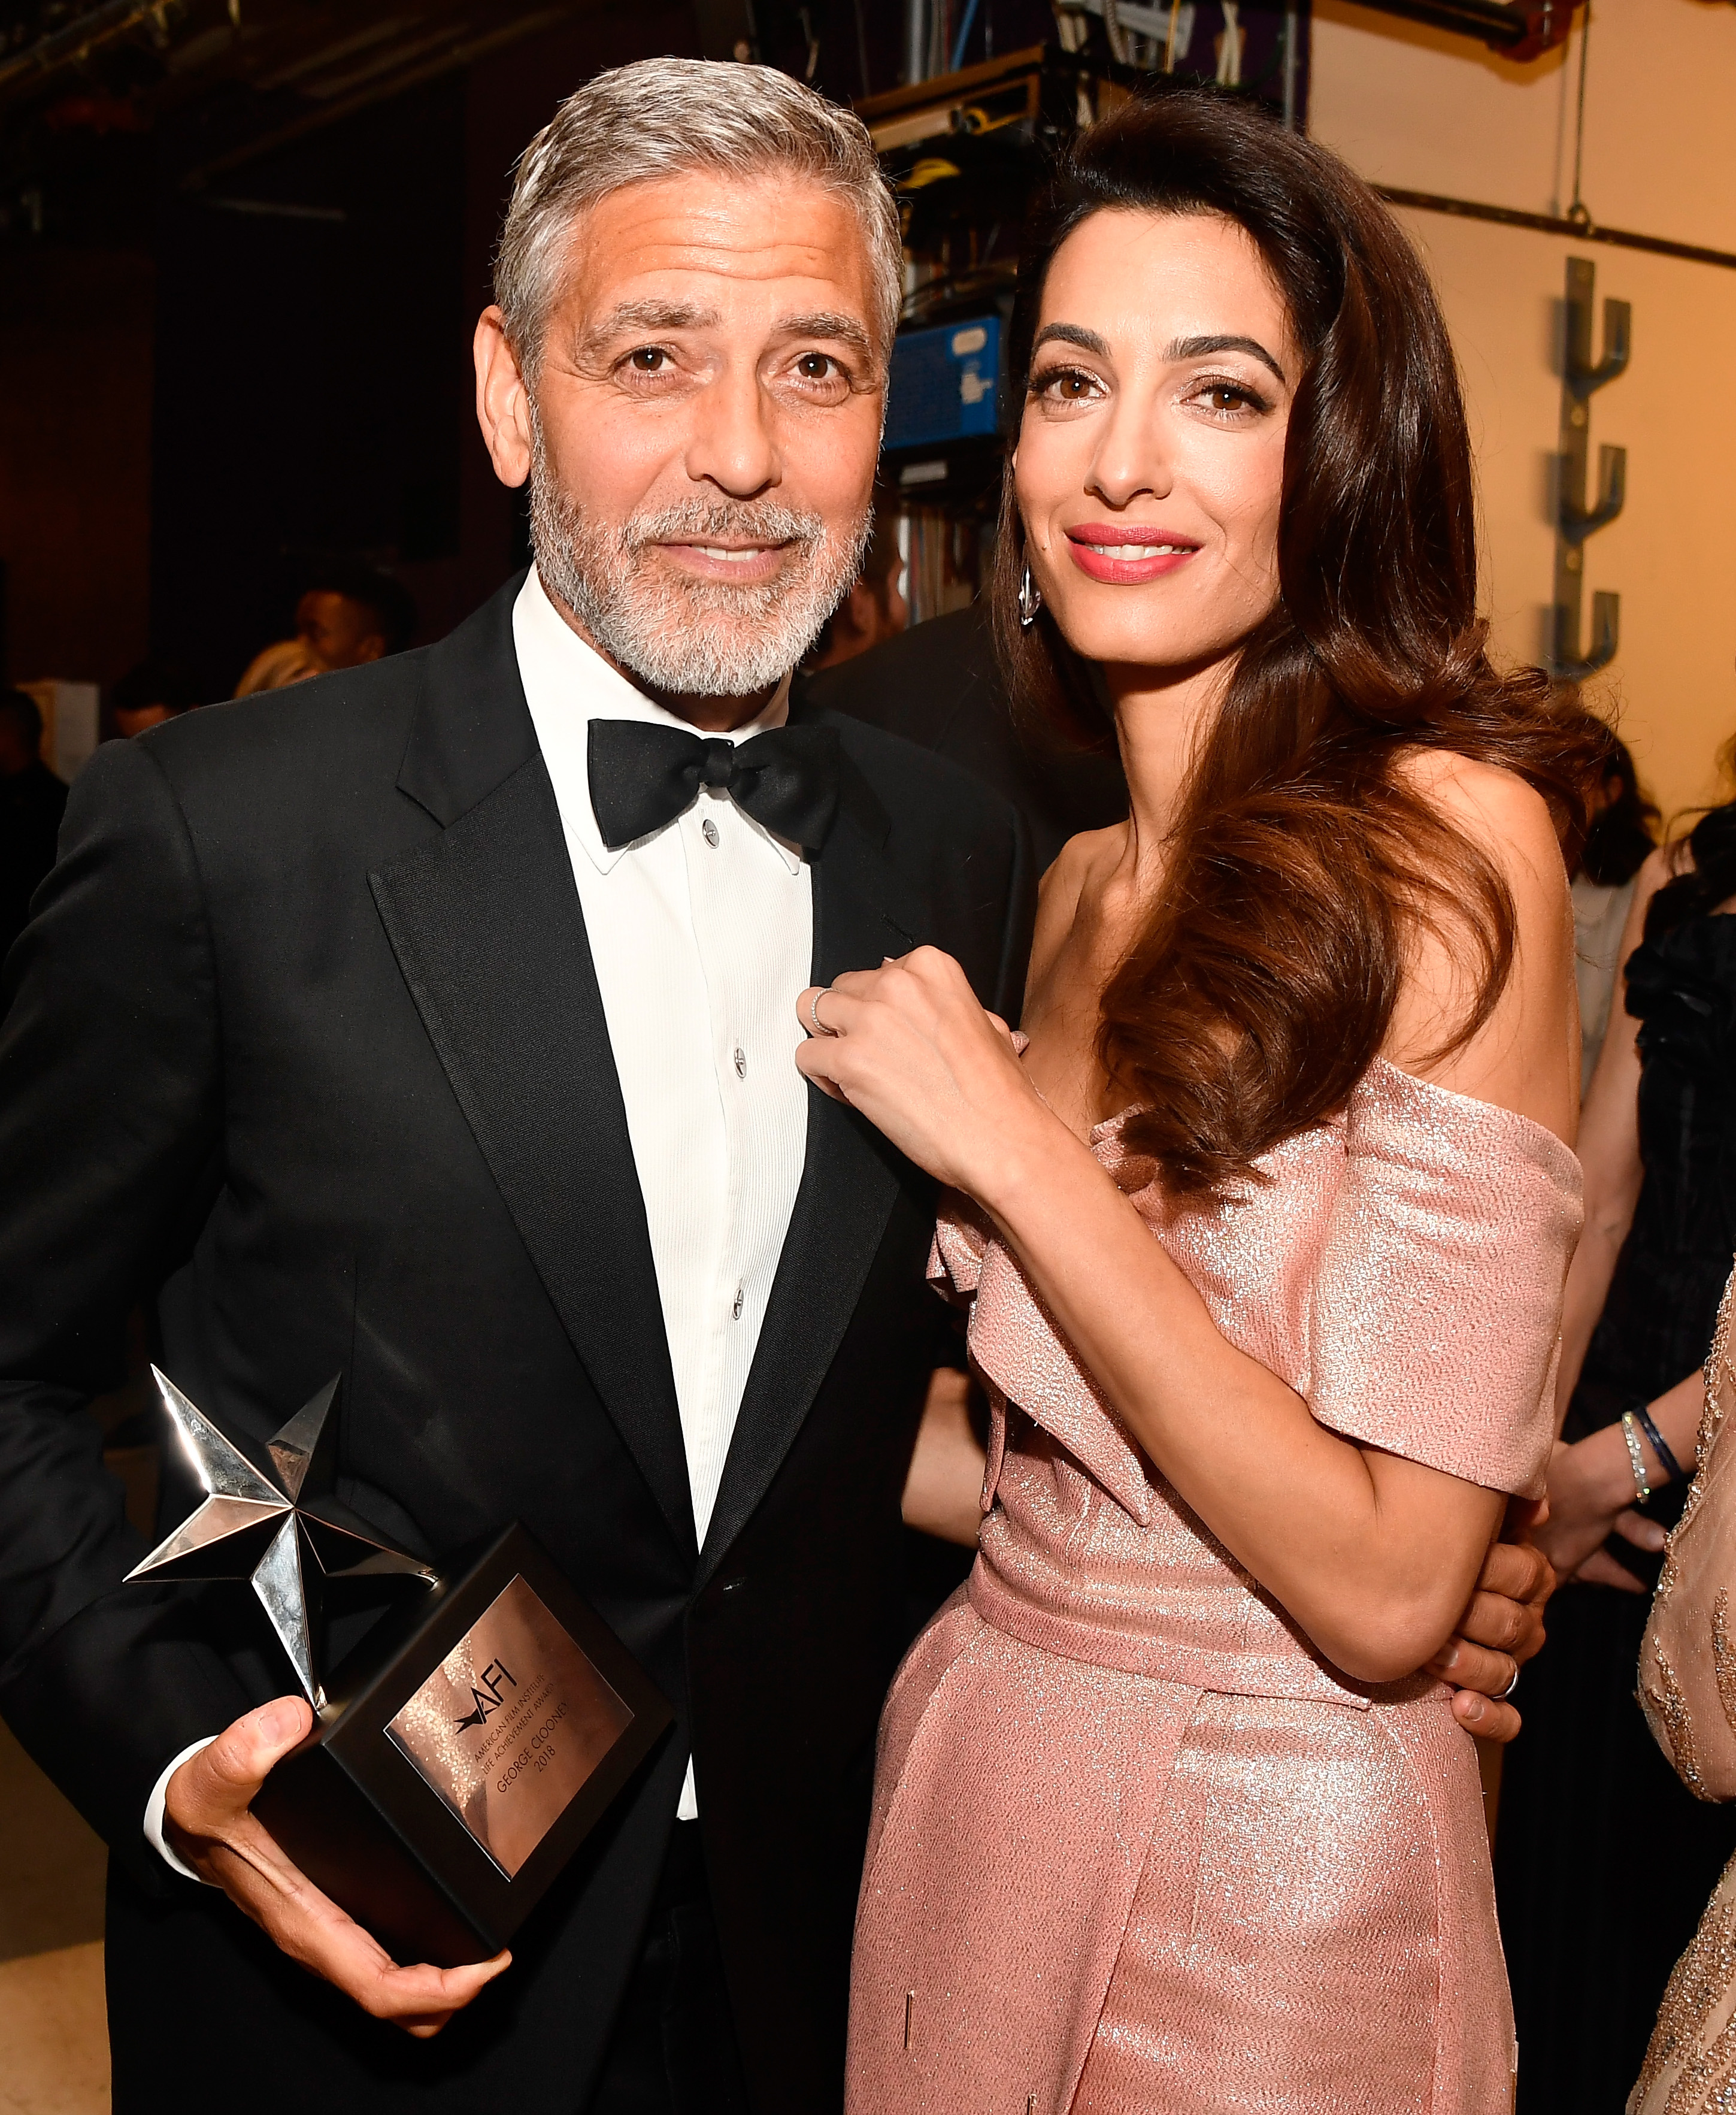 George Clooney and Amal Clooney (Source: Getty Images)